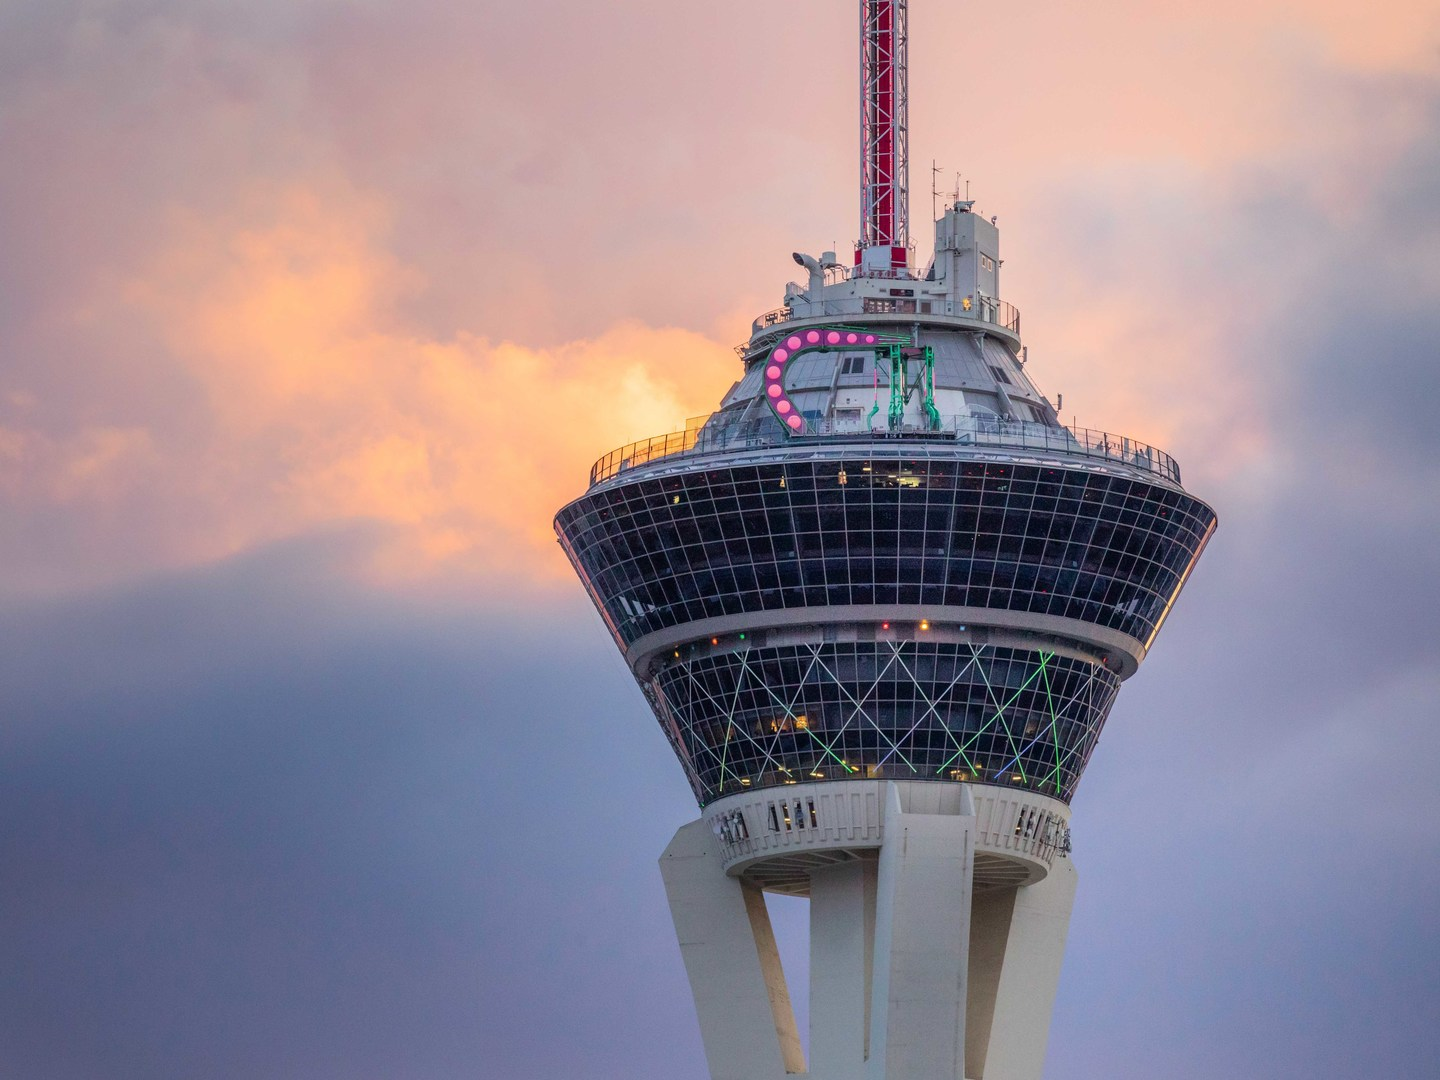 Marriott's Grand Chateau<span class='trademark'>®</span> Stratosphere. Marriott's Grand Chateau<span class='trademark'>®</span> is located in Las Vegas, Nevada United States.